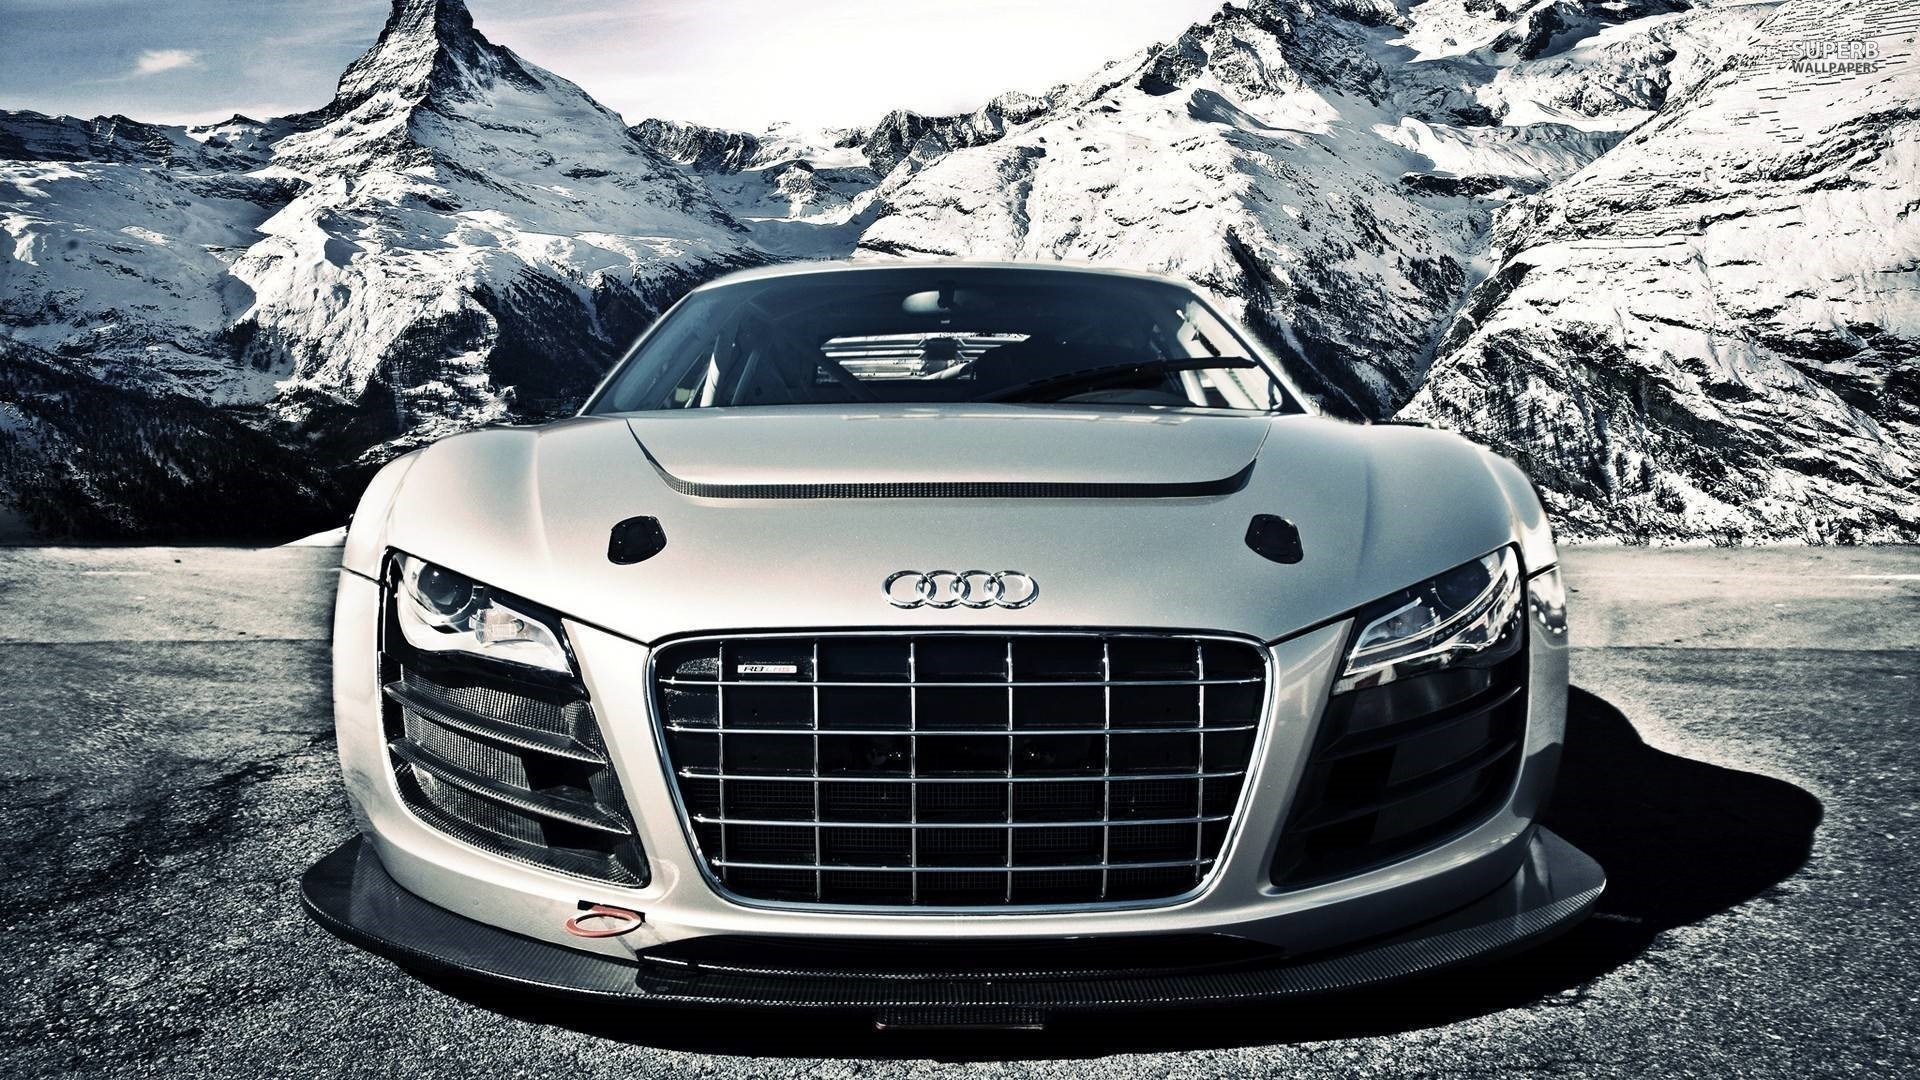 Audi R8 HTC Wallpapers